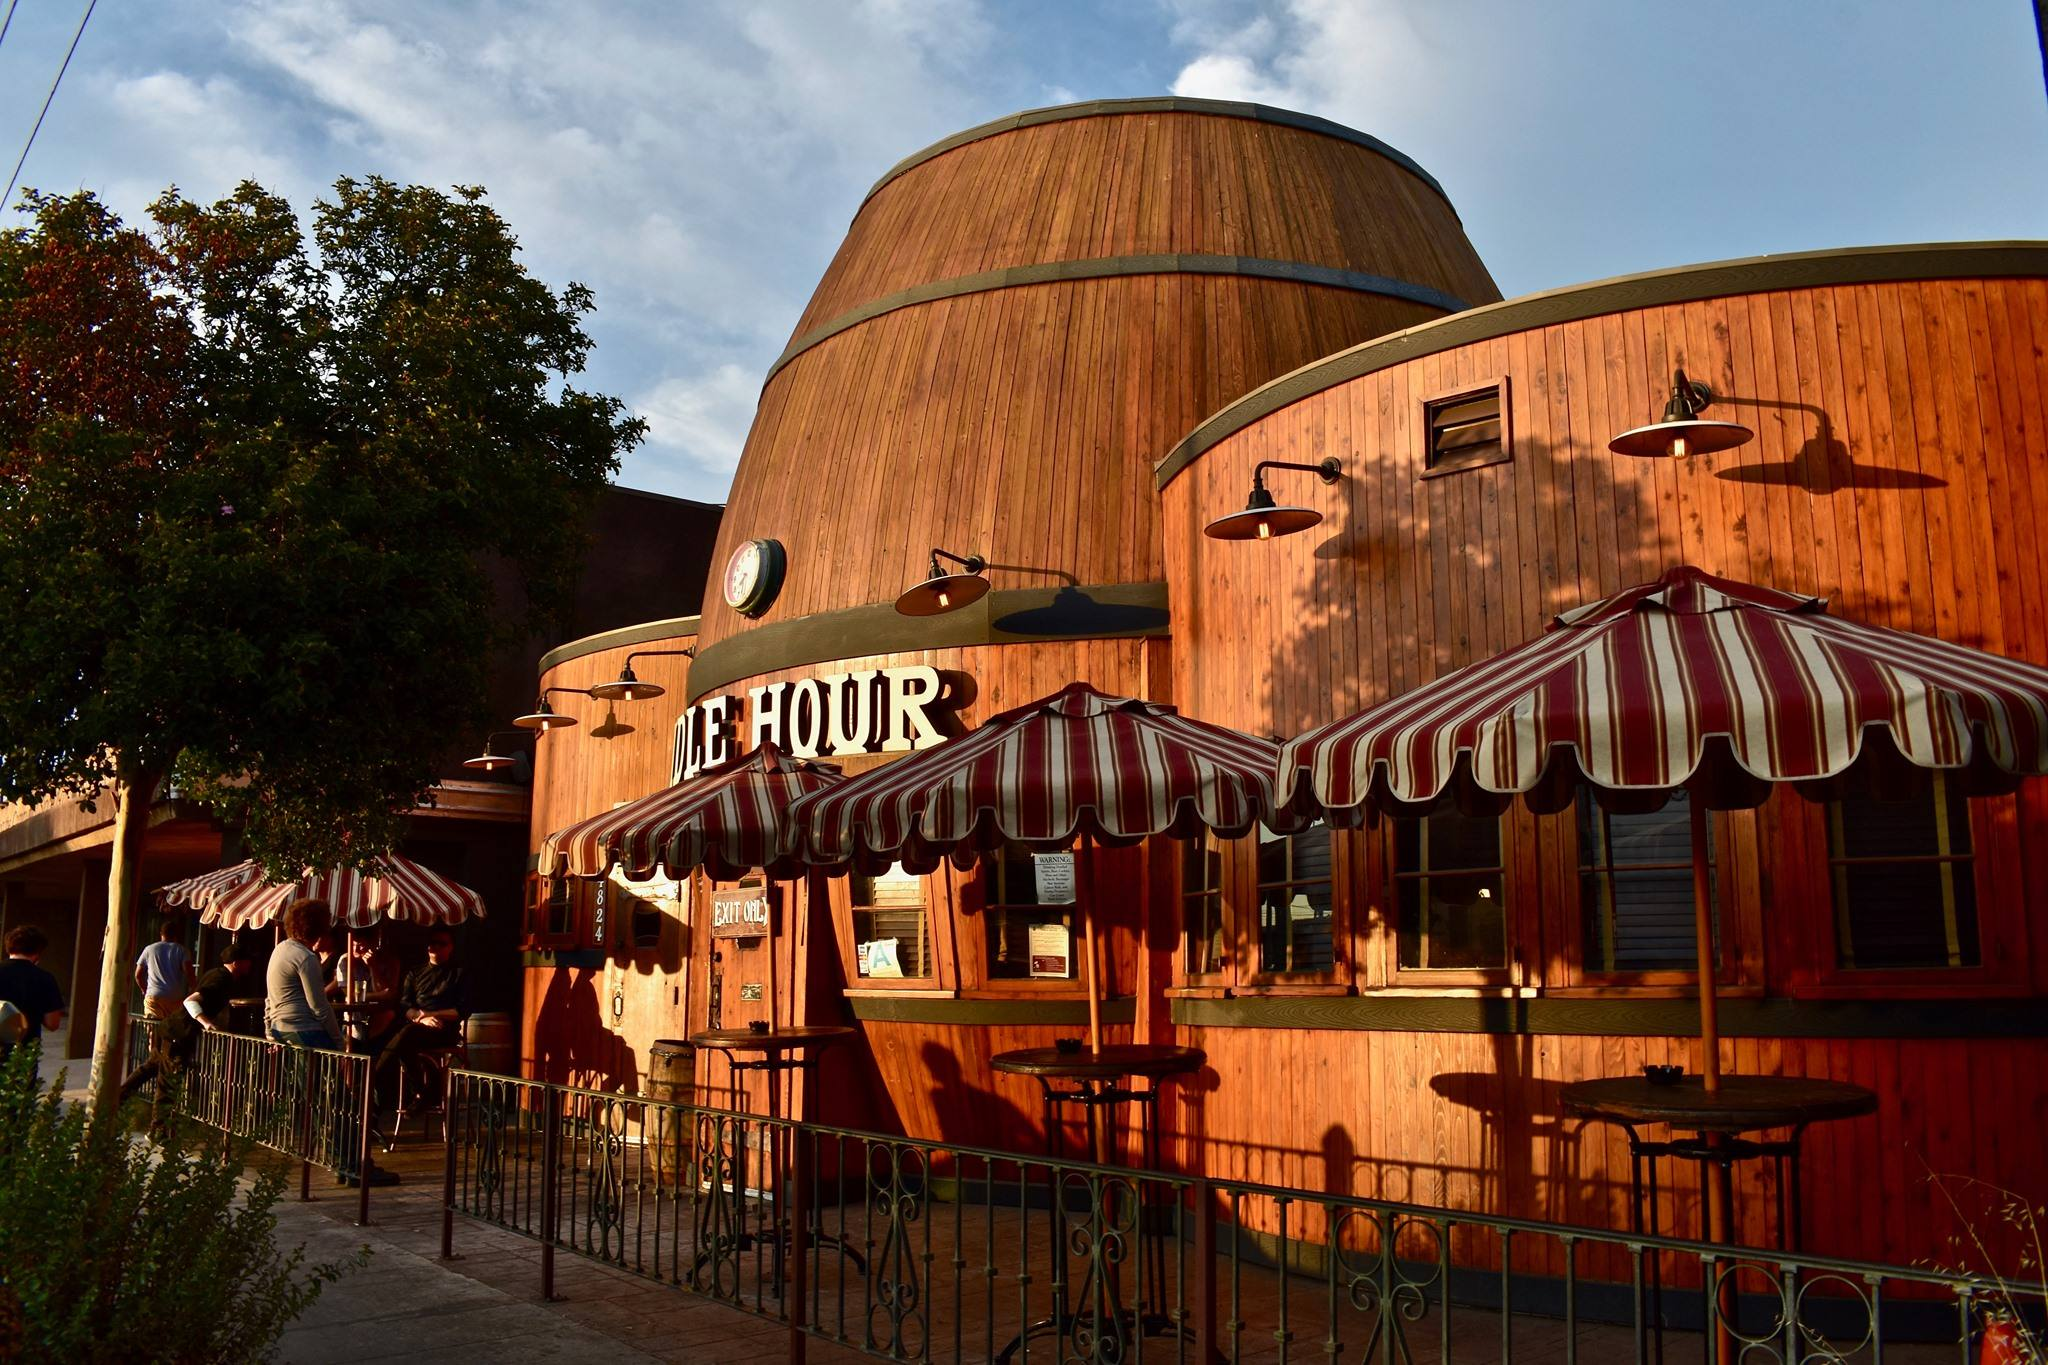 Exterior of the Idle Hour bar in North Hollywood